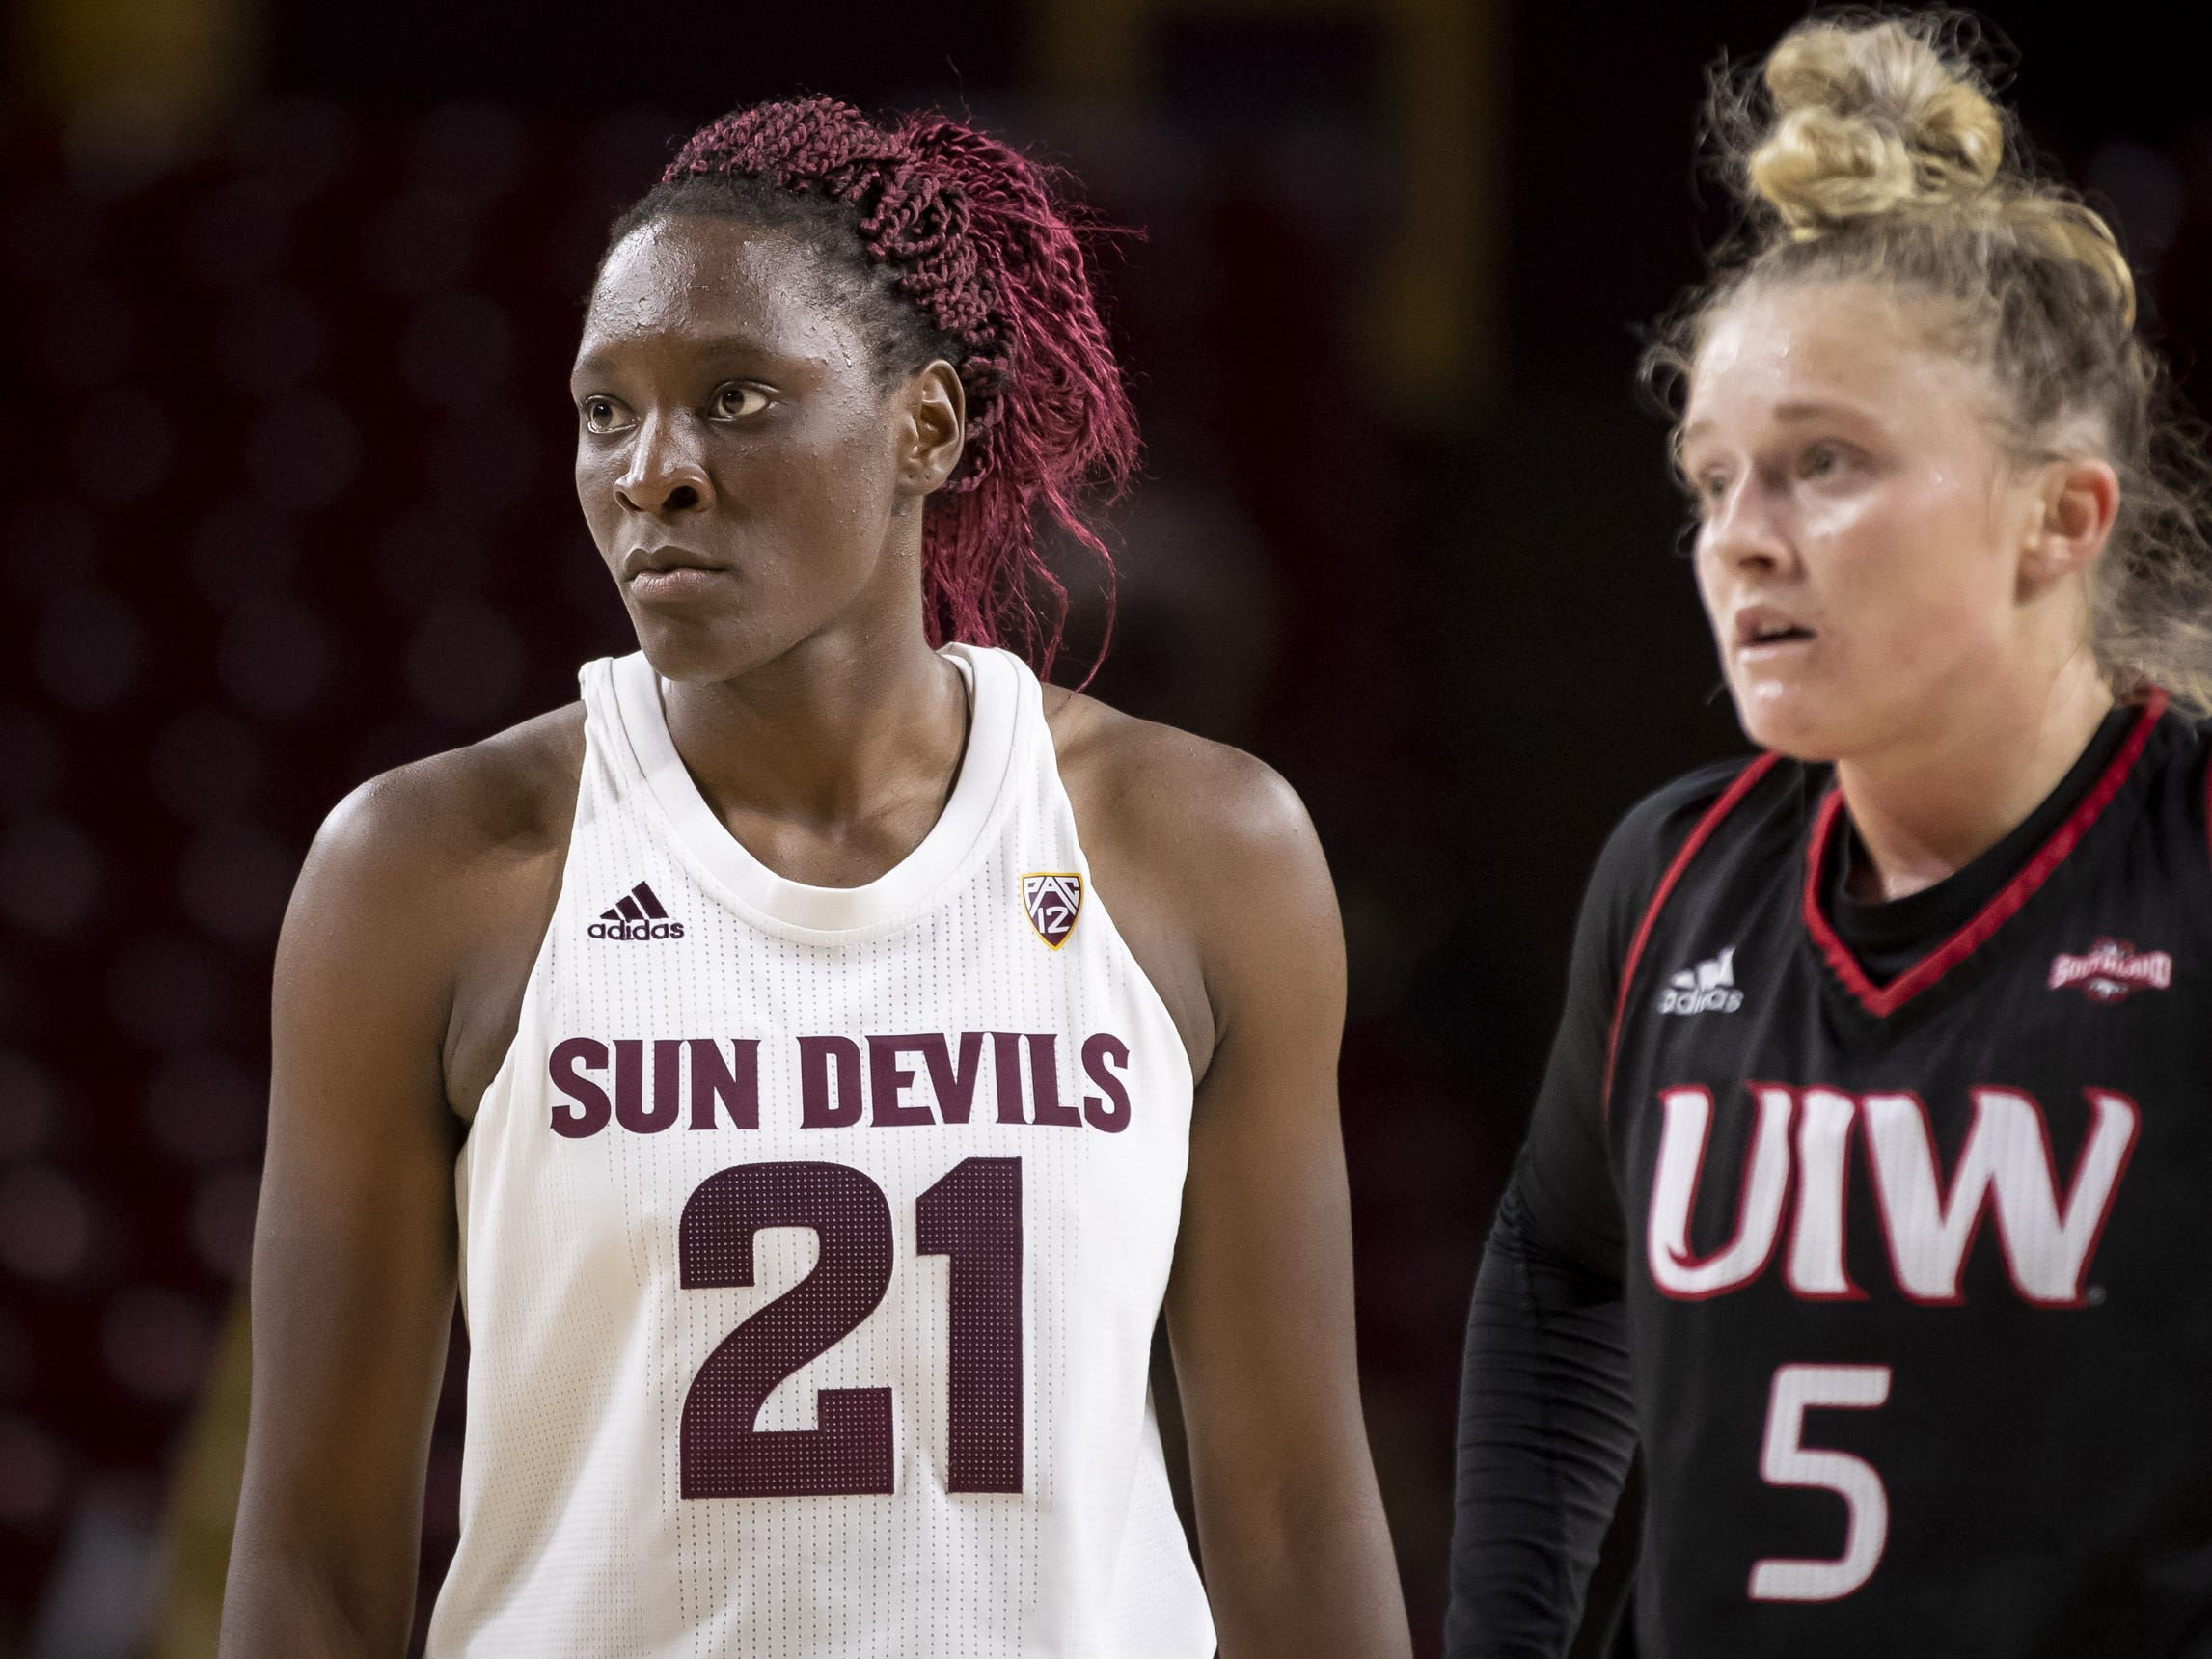 Iorward Sophia Elenga (21) of the Arizona State Sun Devils during the game against the Incarnate Word Cardinals at Wells Fargo Arena on Tuesday, November 6, 2018 in Tempe, Arizona.